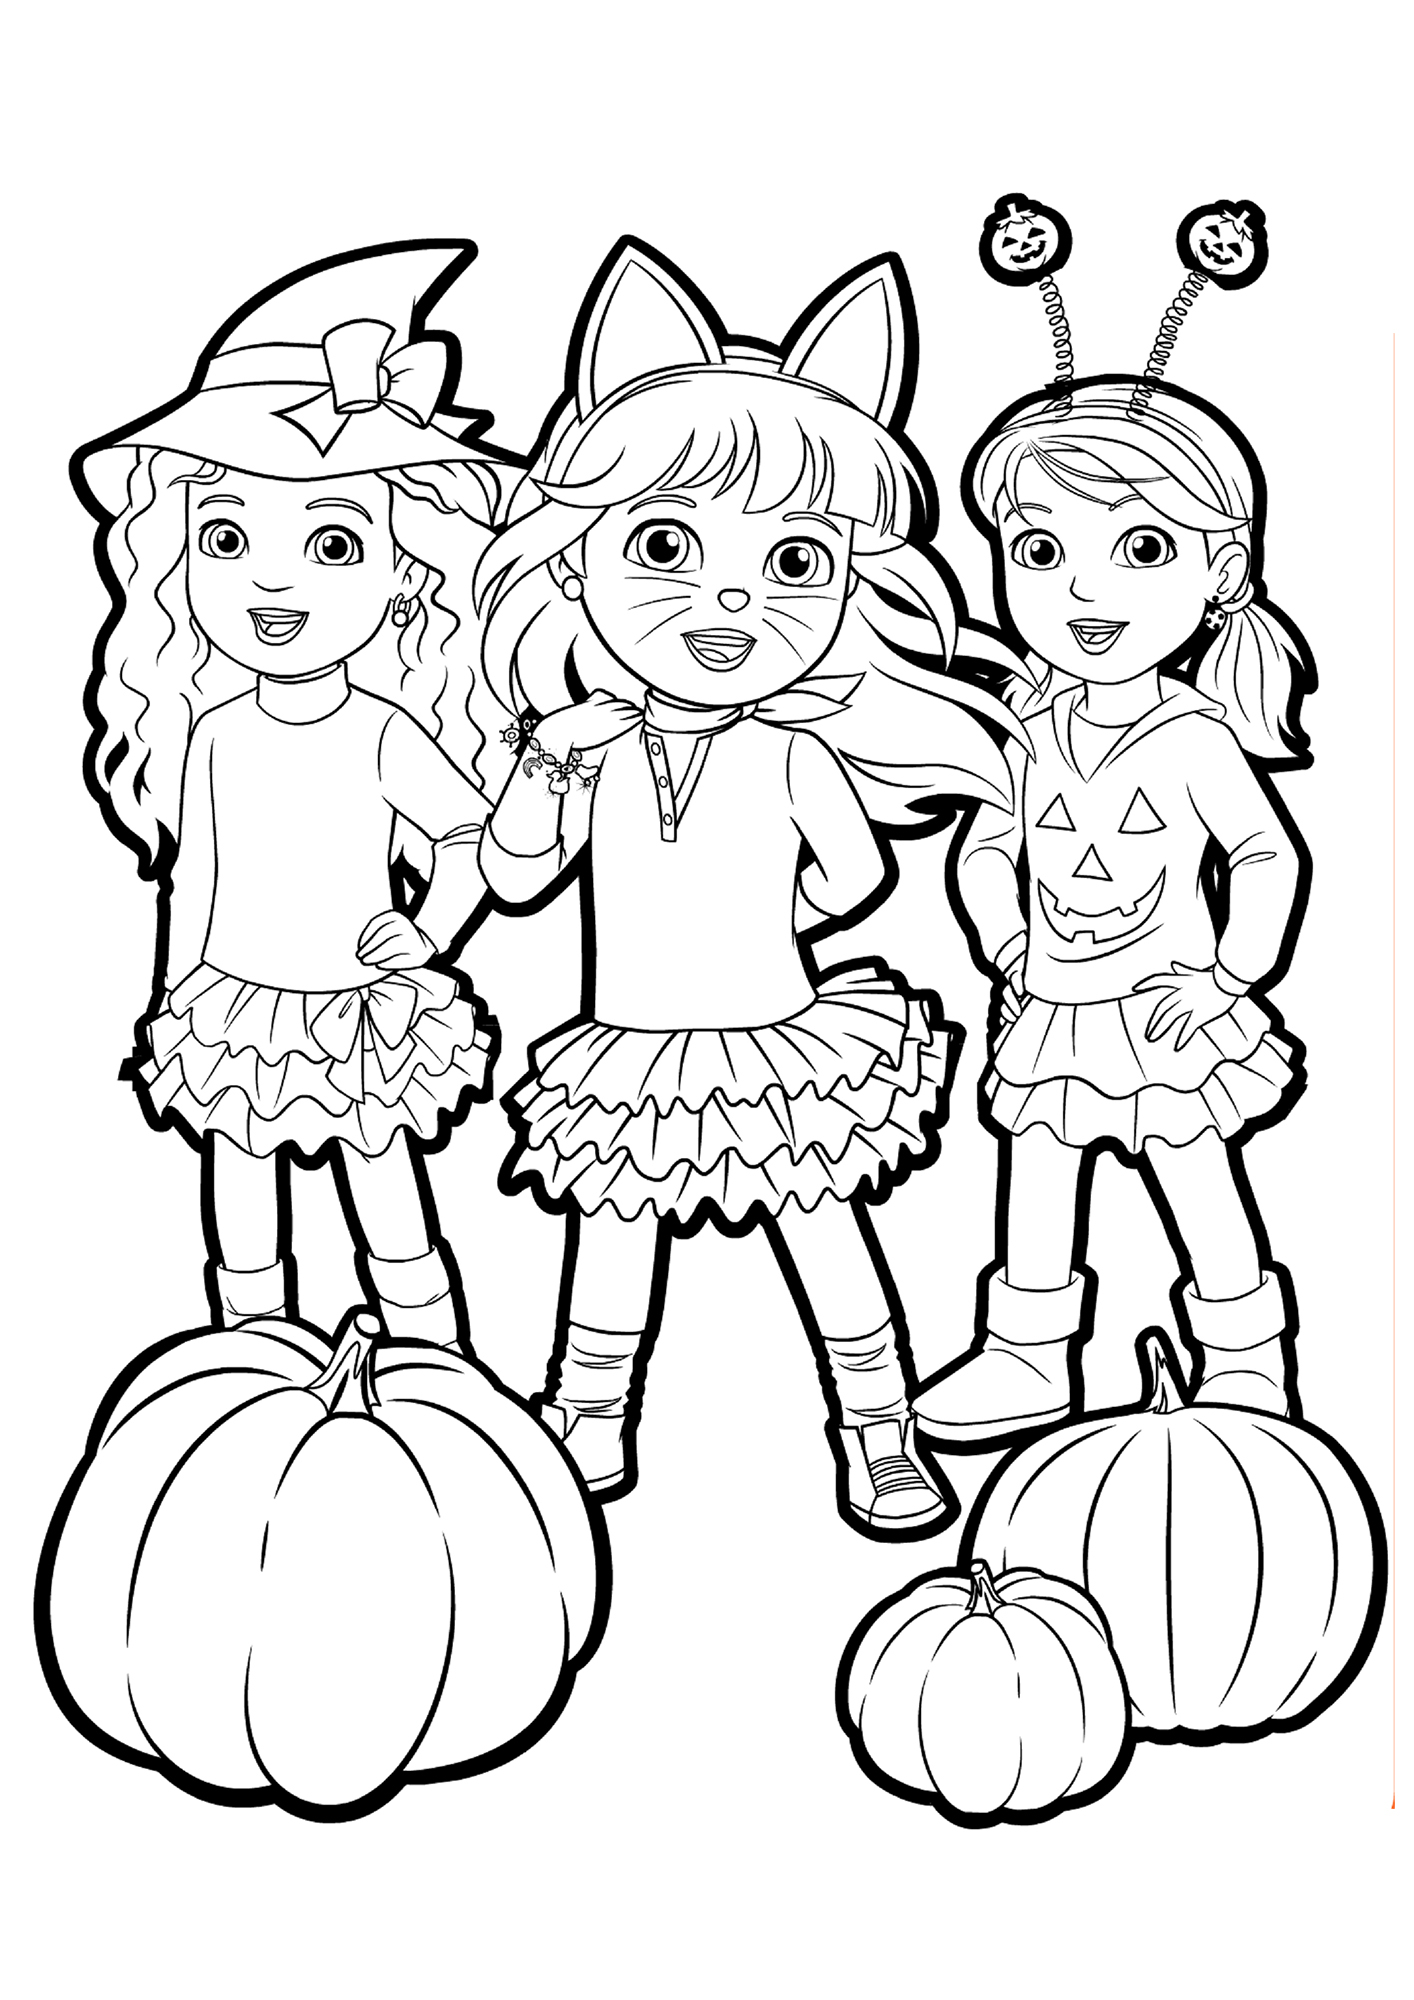 coloring pages dora and friends dora and friends coloring pages to download and print for free coloring friends dora pages and